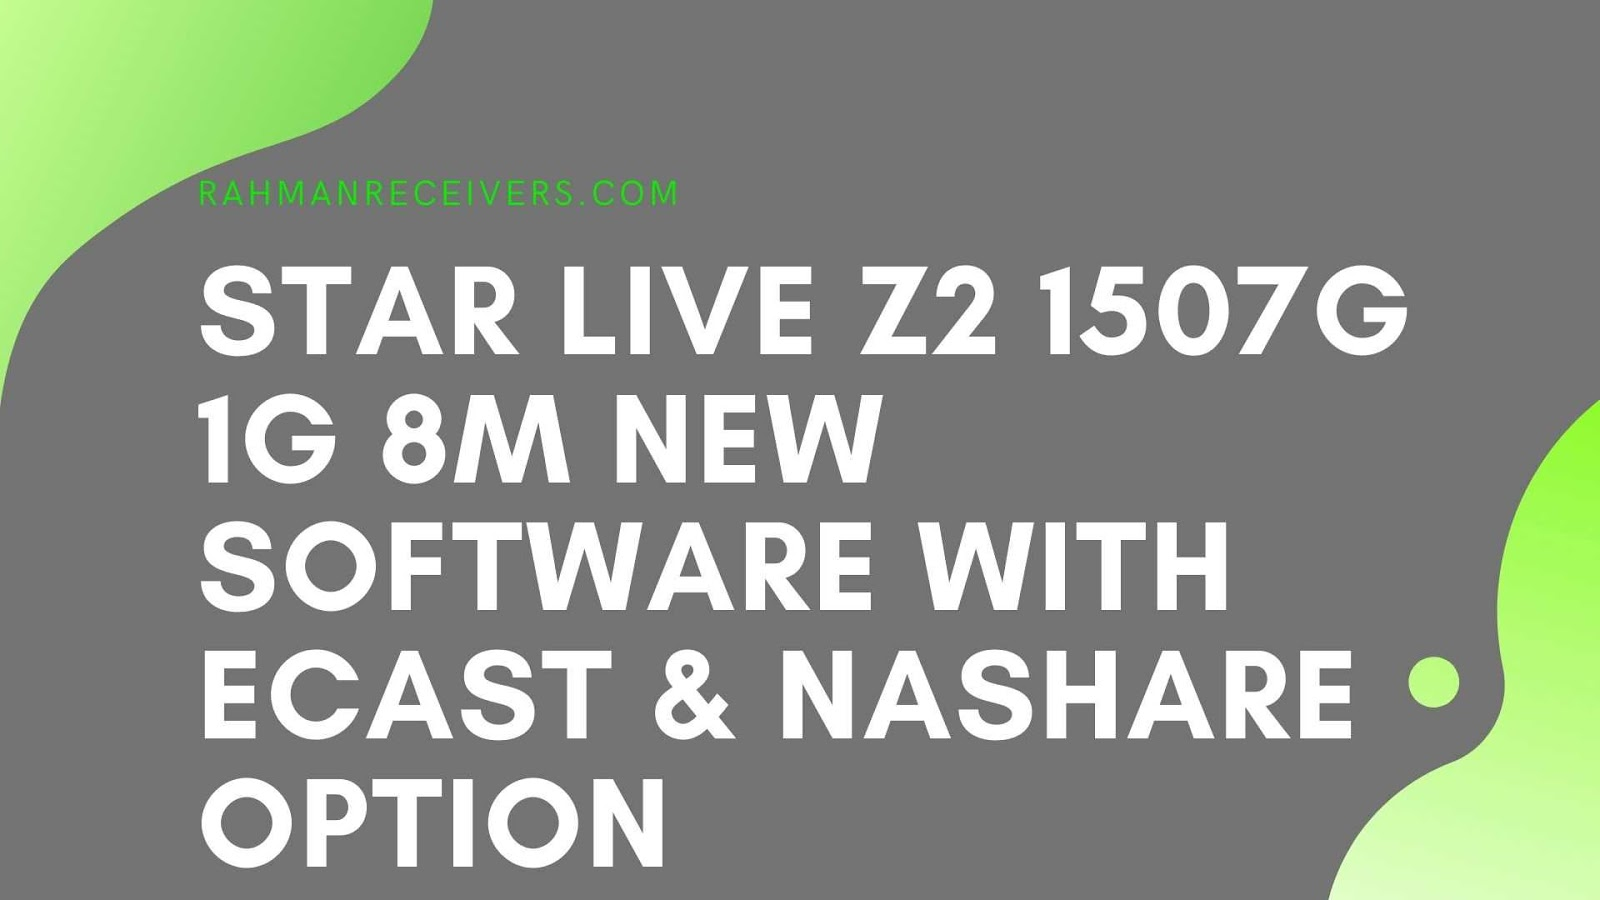 STAR LIVE Z2 1507G 1G 8M NEW SOFTWARE WITH ECAST & NASHARE OPTION 25 MARCH 2020